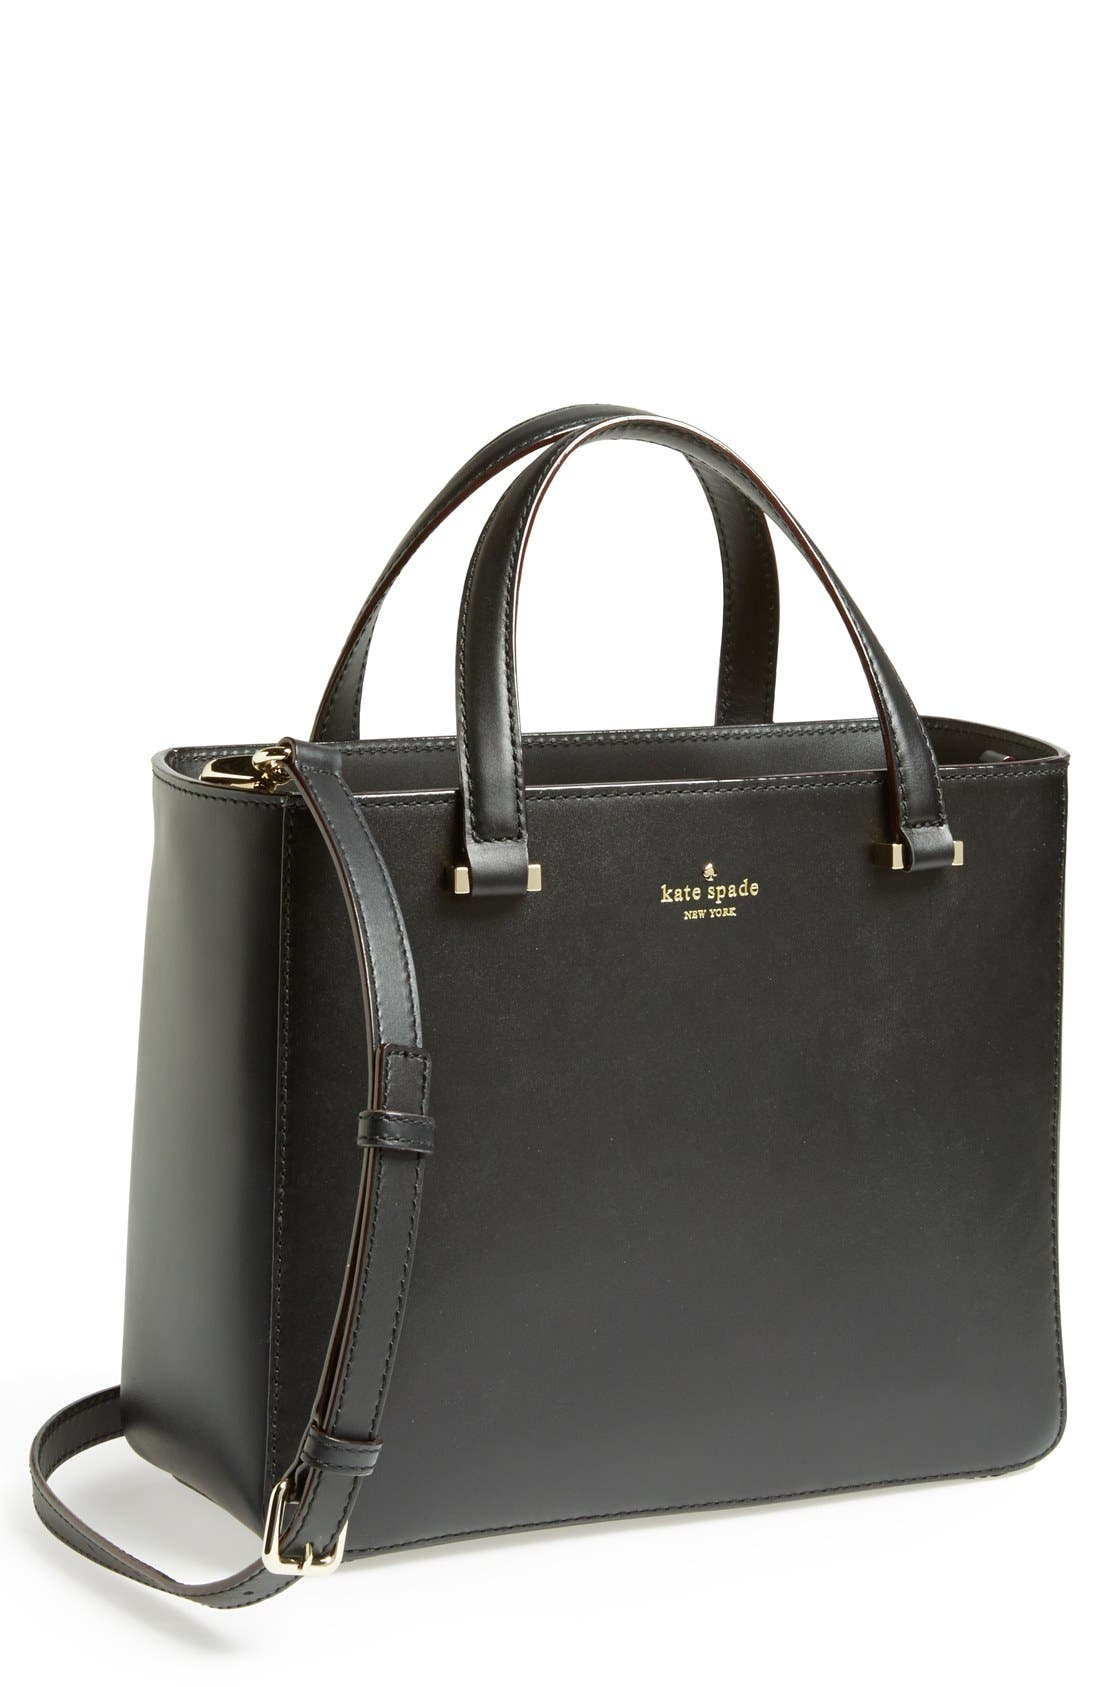 Main Image - kate spade new york 'park avenue sweetheart' leather crossbody tote